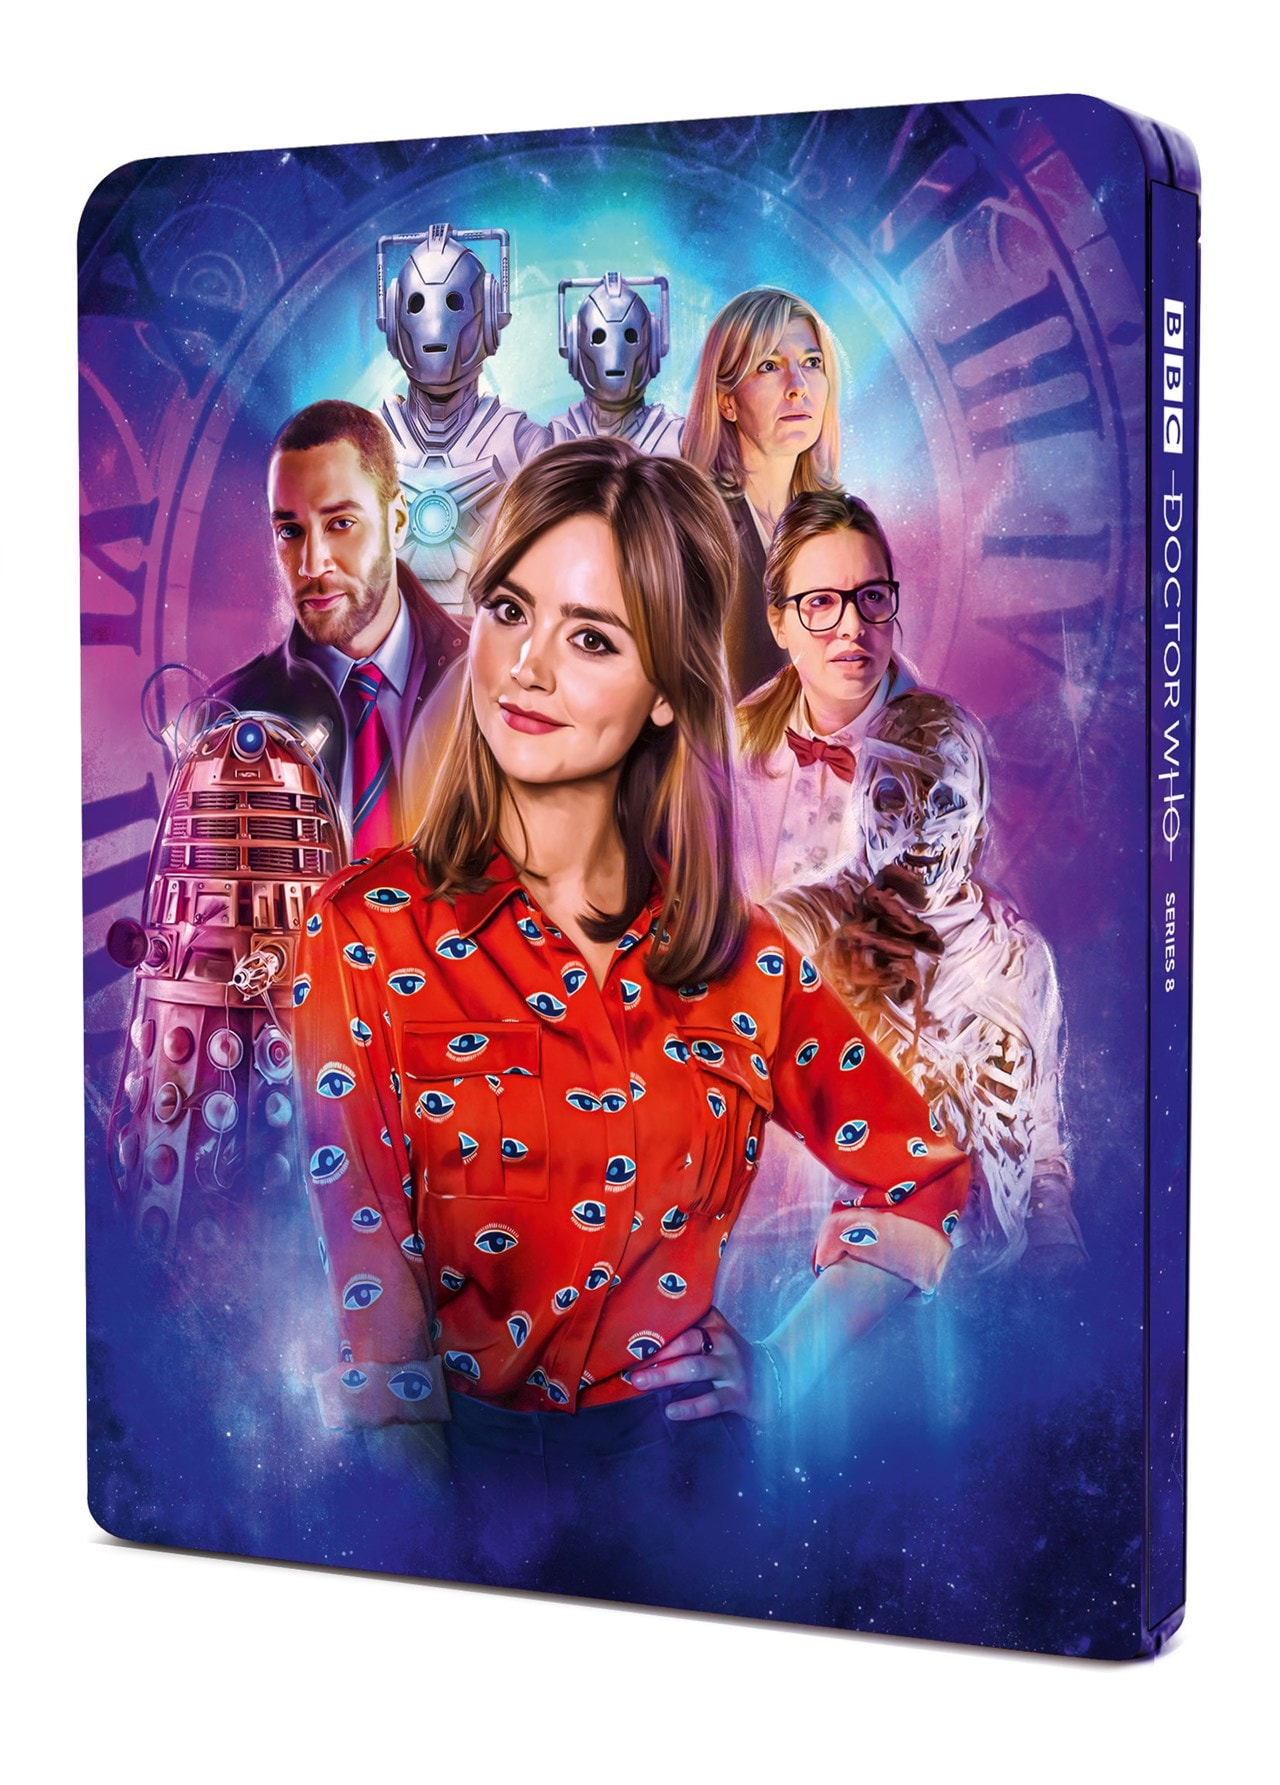 Doctor Who: The Complete Eighth Series Limited Edition Steelbook - 2